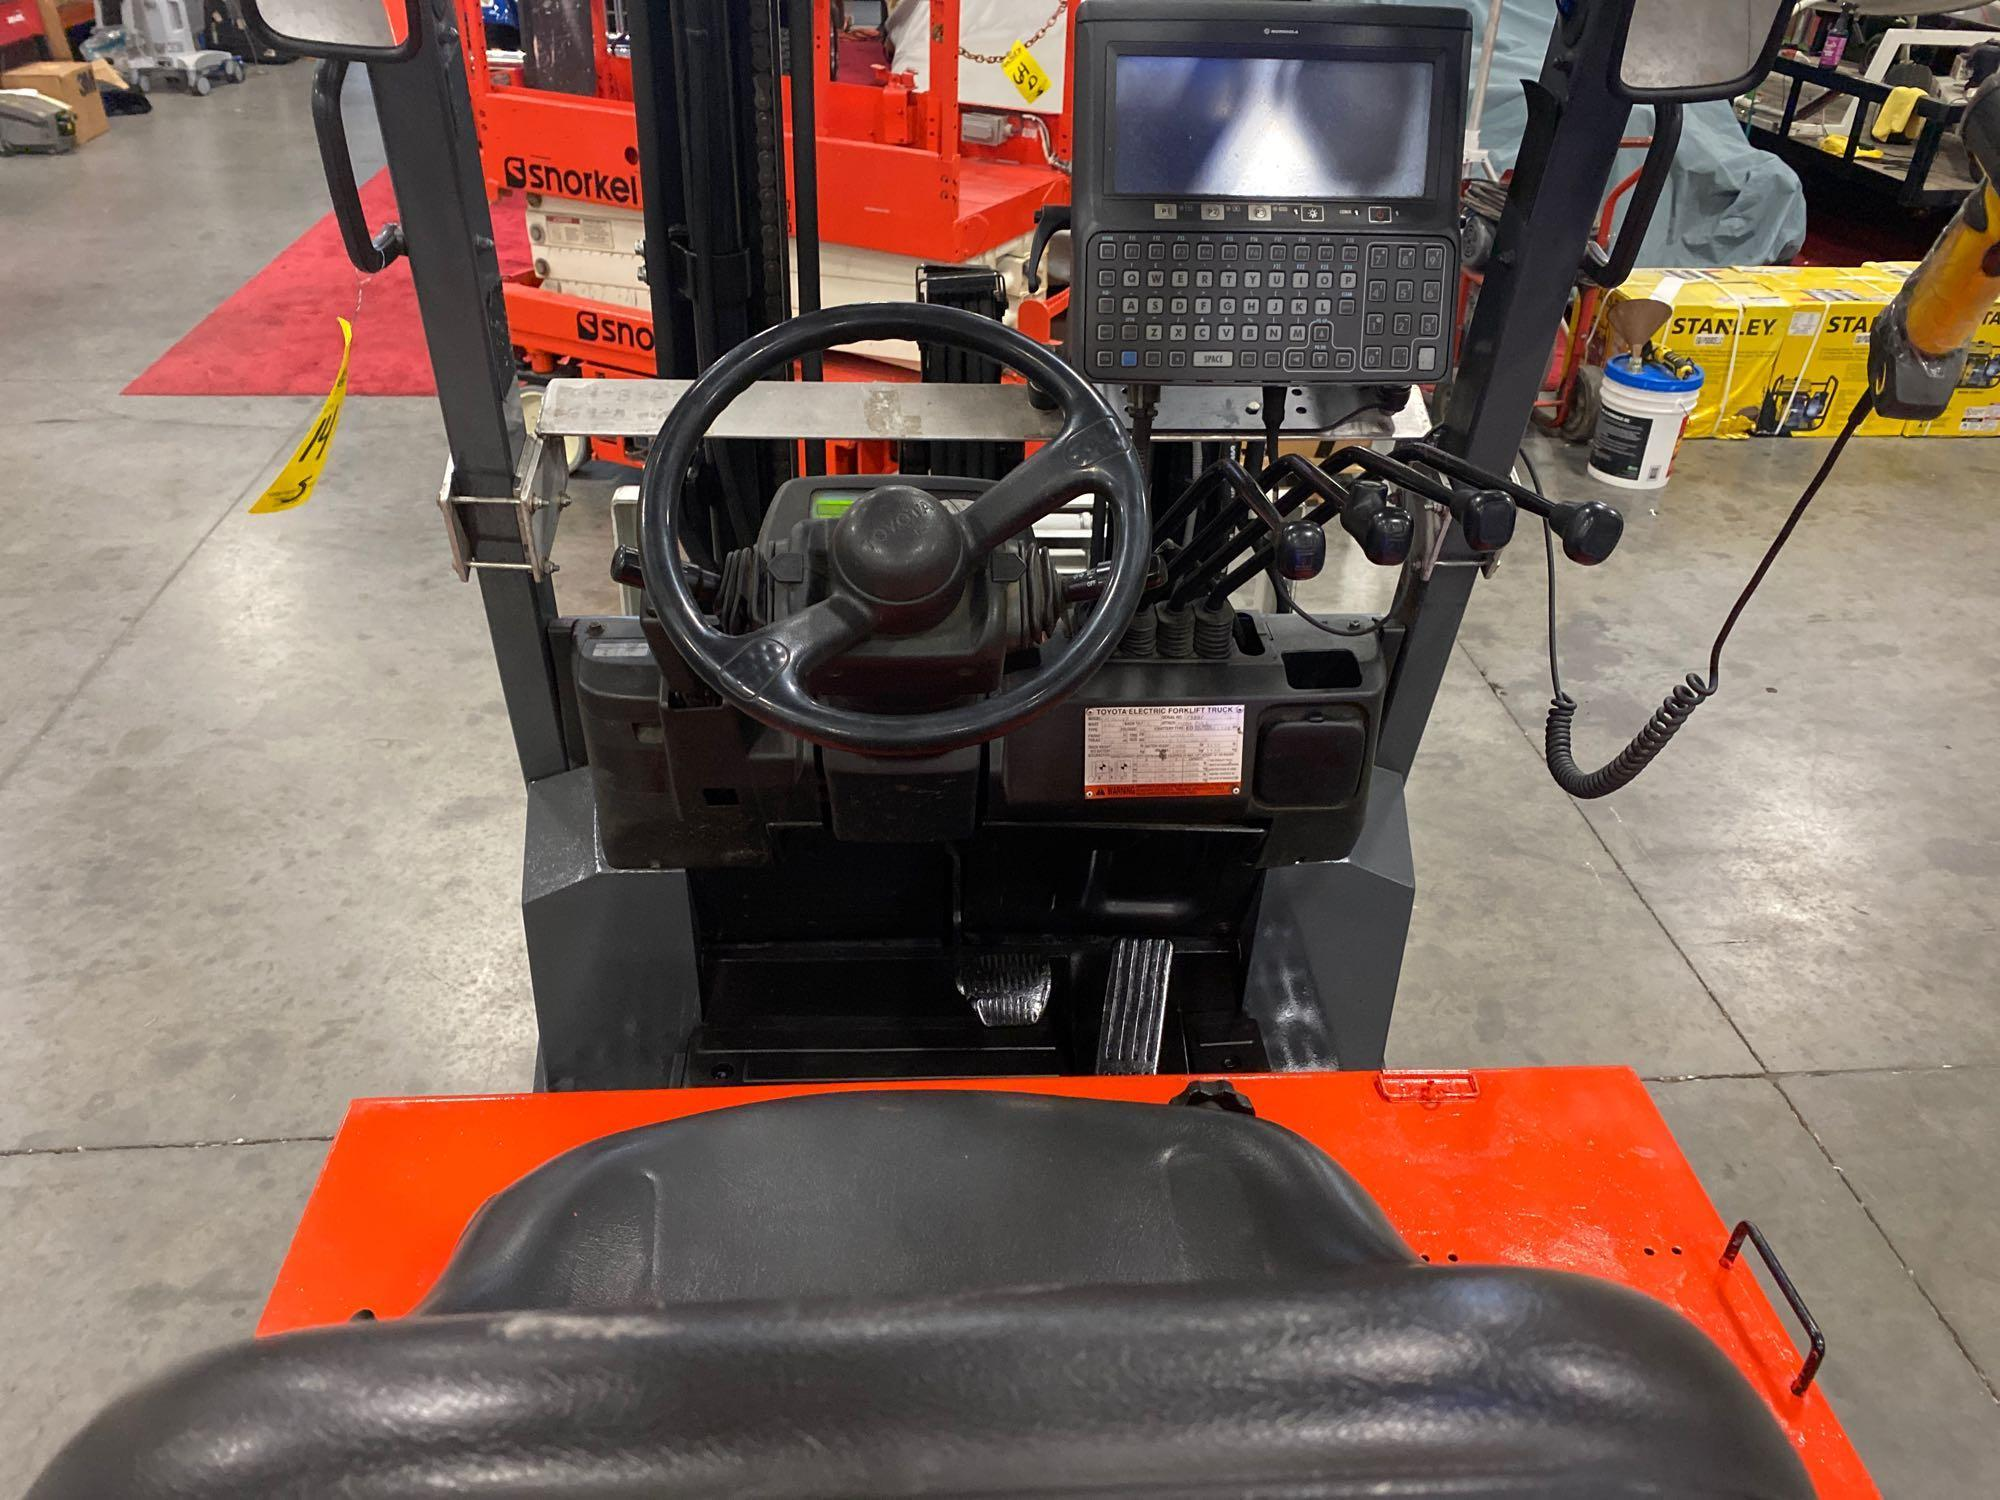 """TOYOTA ELECTRIC FORKLIFT MODEL 7FBCU25, 189"""" HEIGHT CAPACITY, TILT, SIDESHIFT, 36V, RUNS AND OPERATE - Image 8 of 11"""